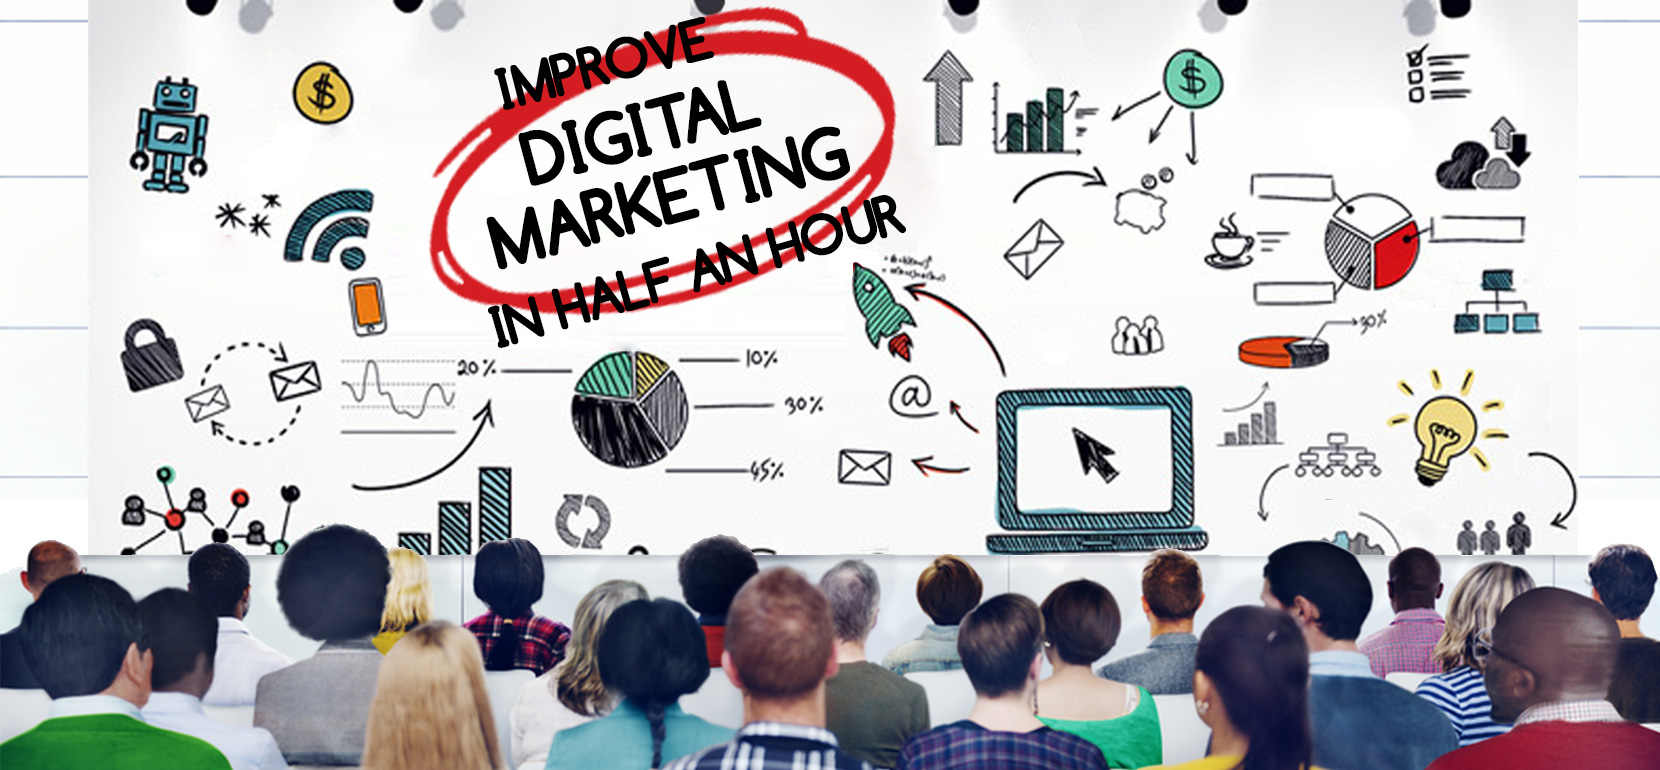 Improve Your Digital Marketing Skills in Half an hour1